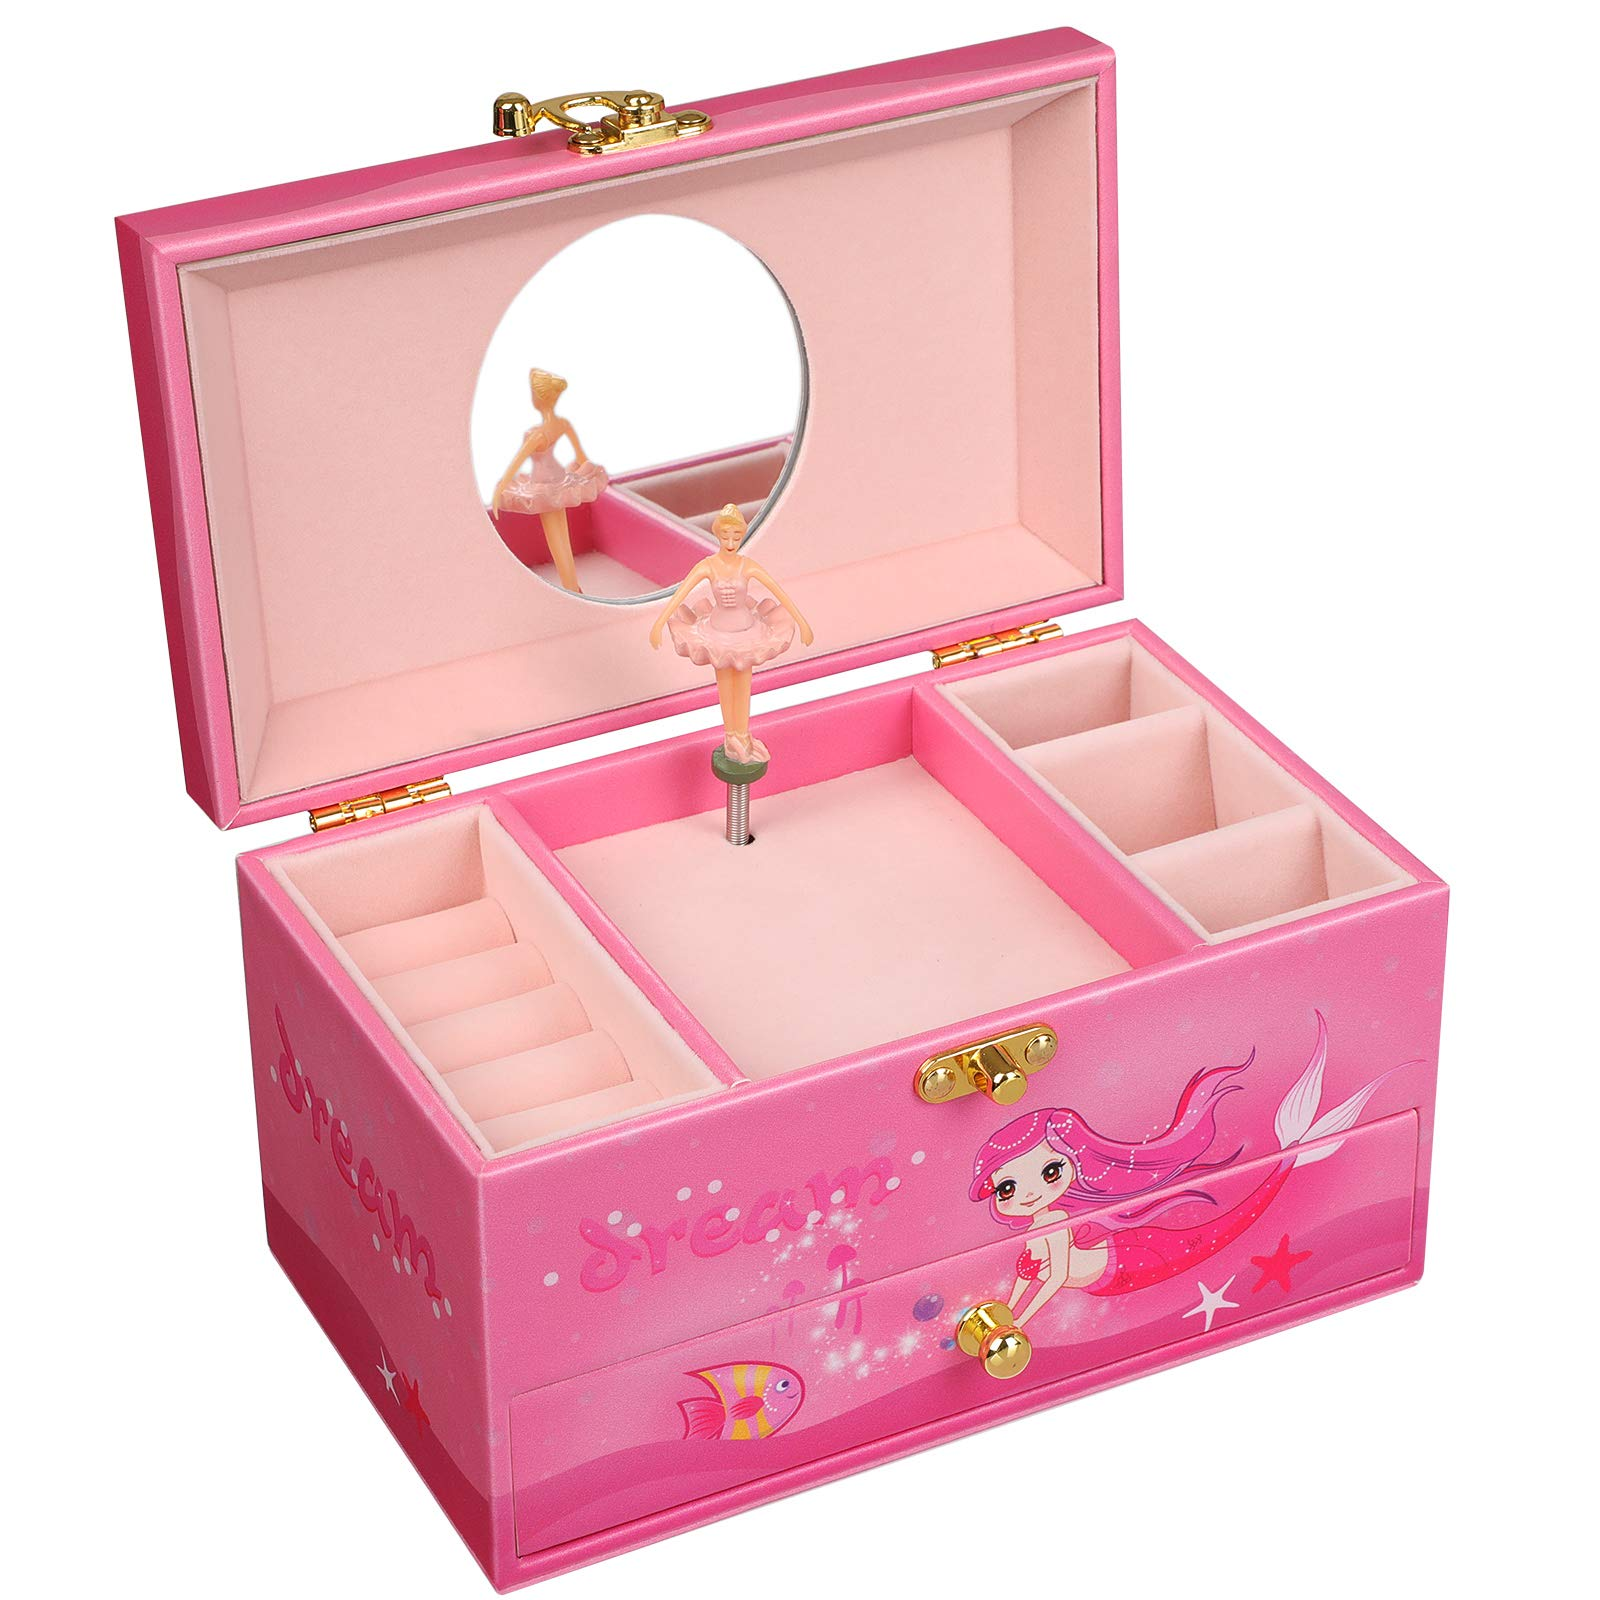 SONGMICS Ballerina Musical Jewelry Box for Little Girls, Faux Leather Music Box with Pullout Drawer, Pink Mermaid UJMC14PK